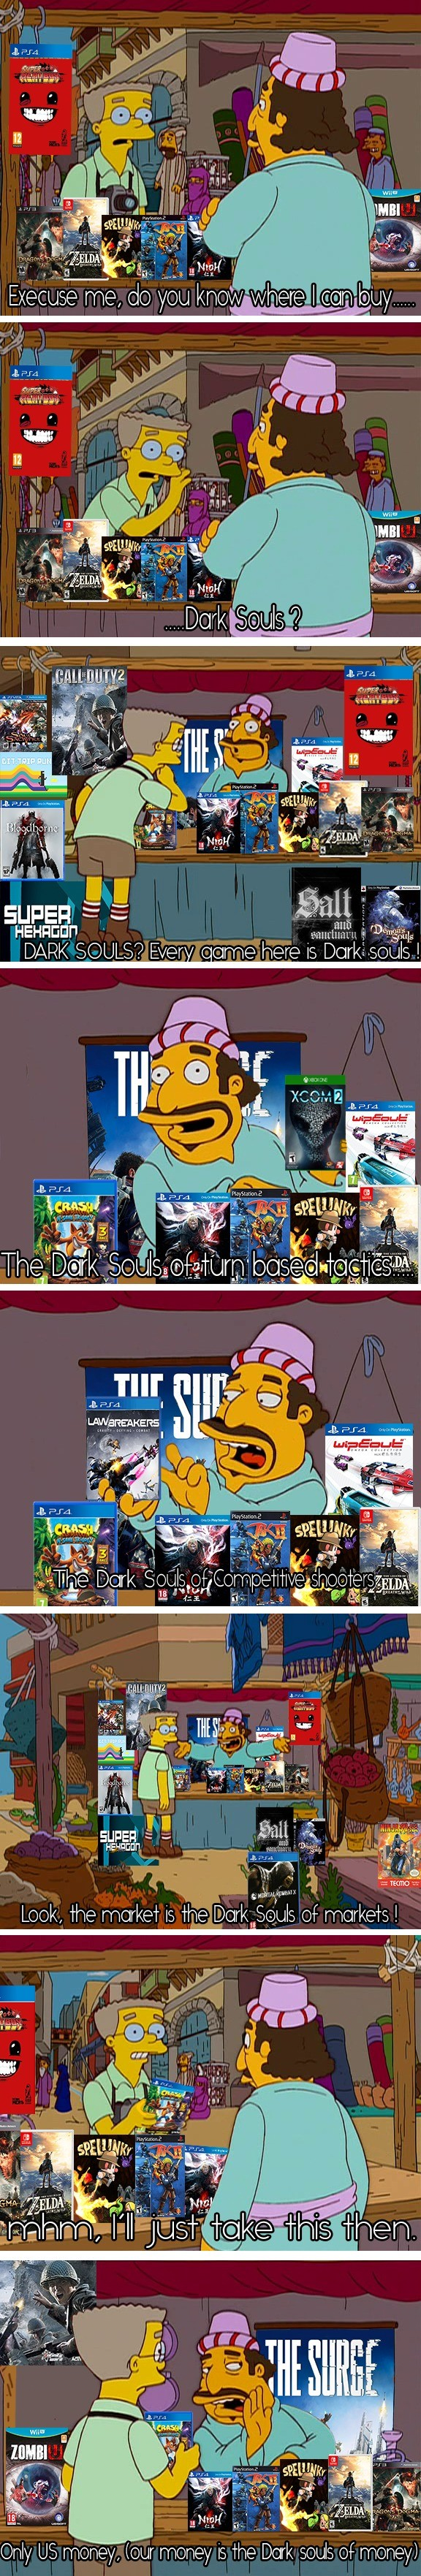 the dark souls of memes. for those who don't get it, it's about how gaming journalists compare every hard game (or any game they suck at it) to dark souls. DARK